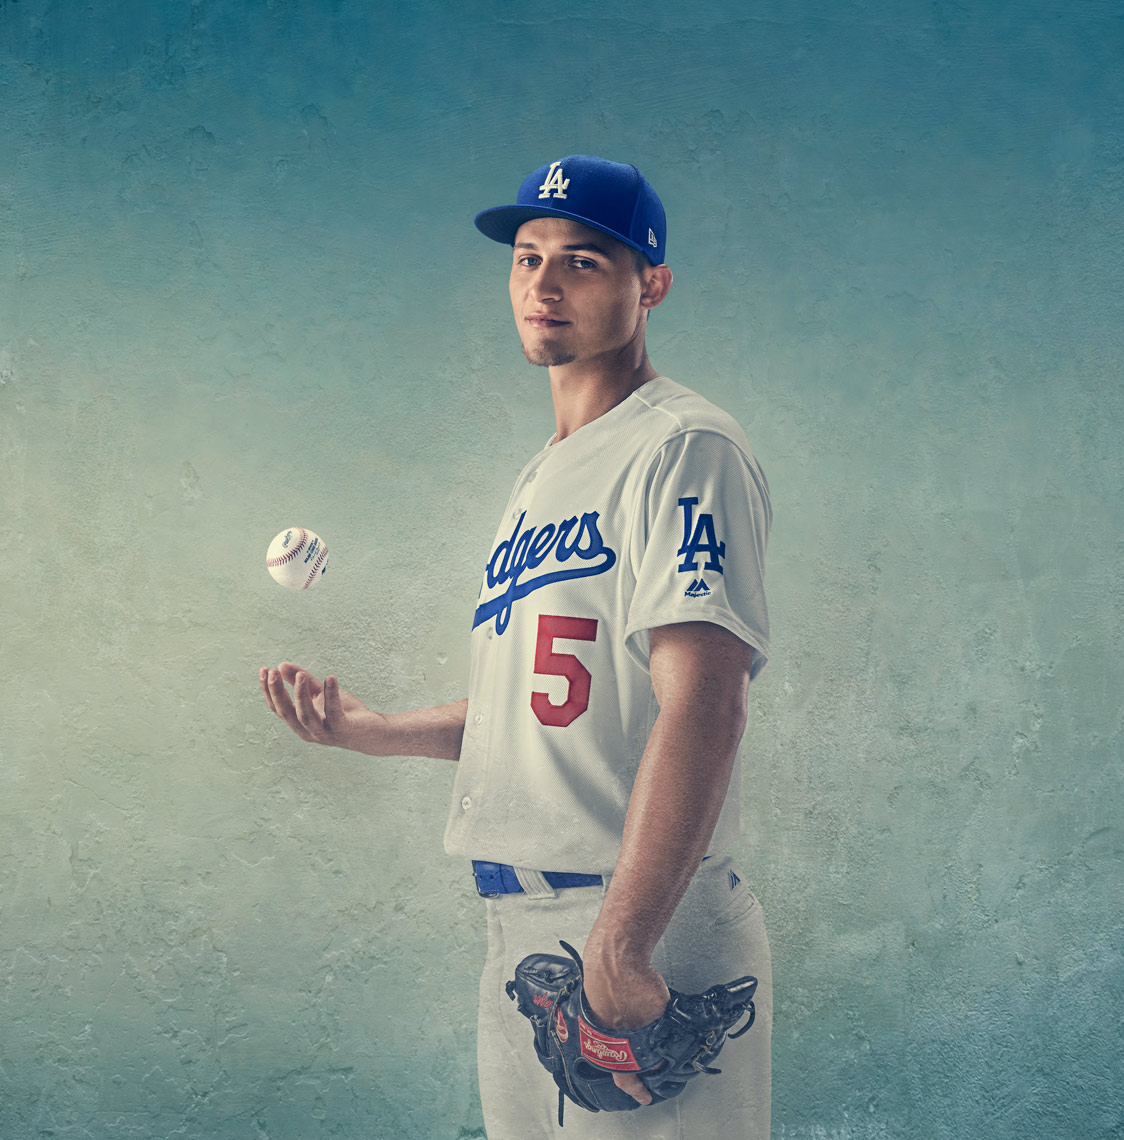 Corey_Seager_Web